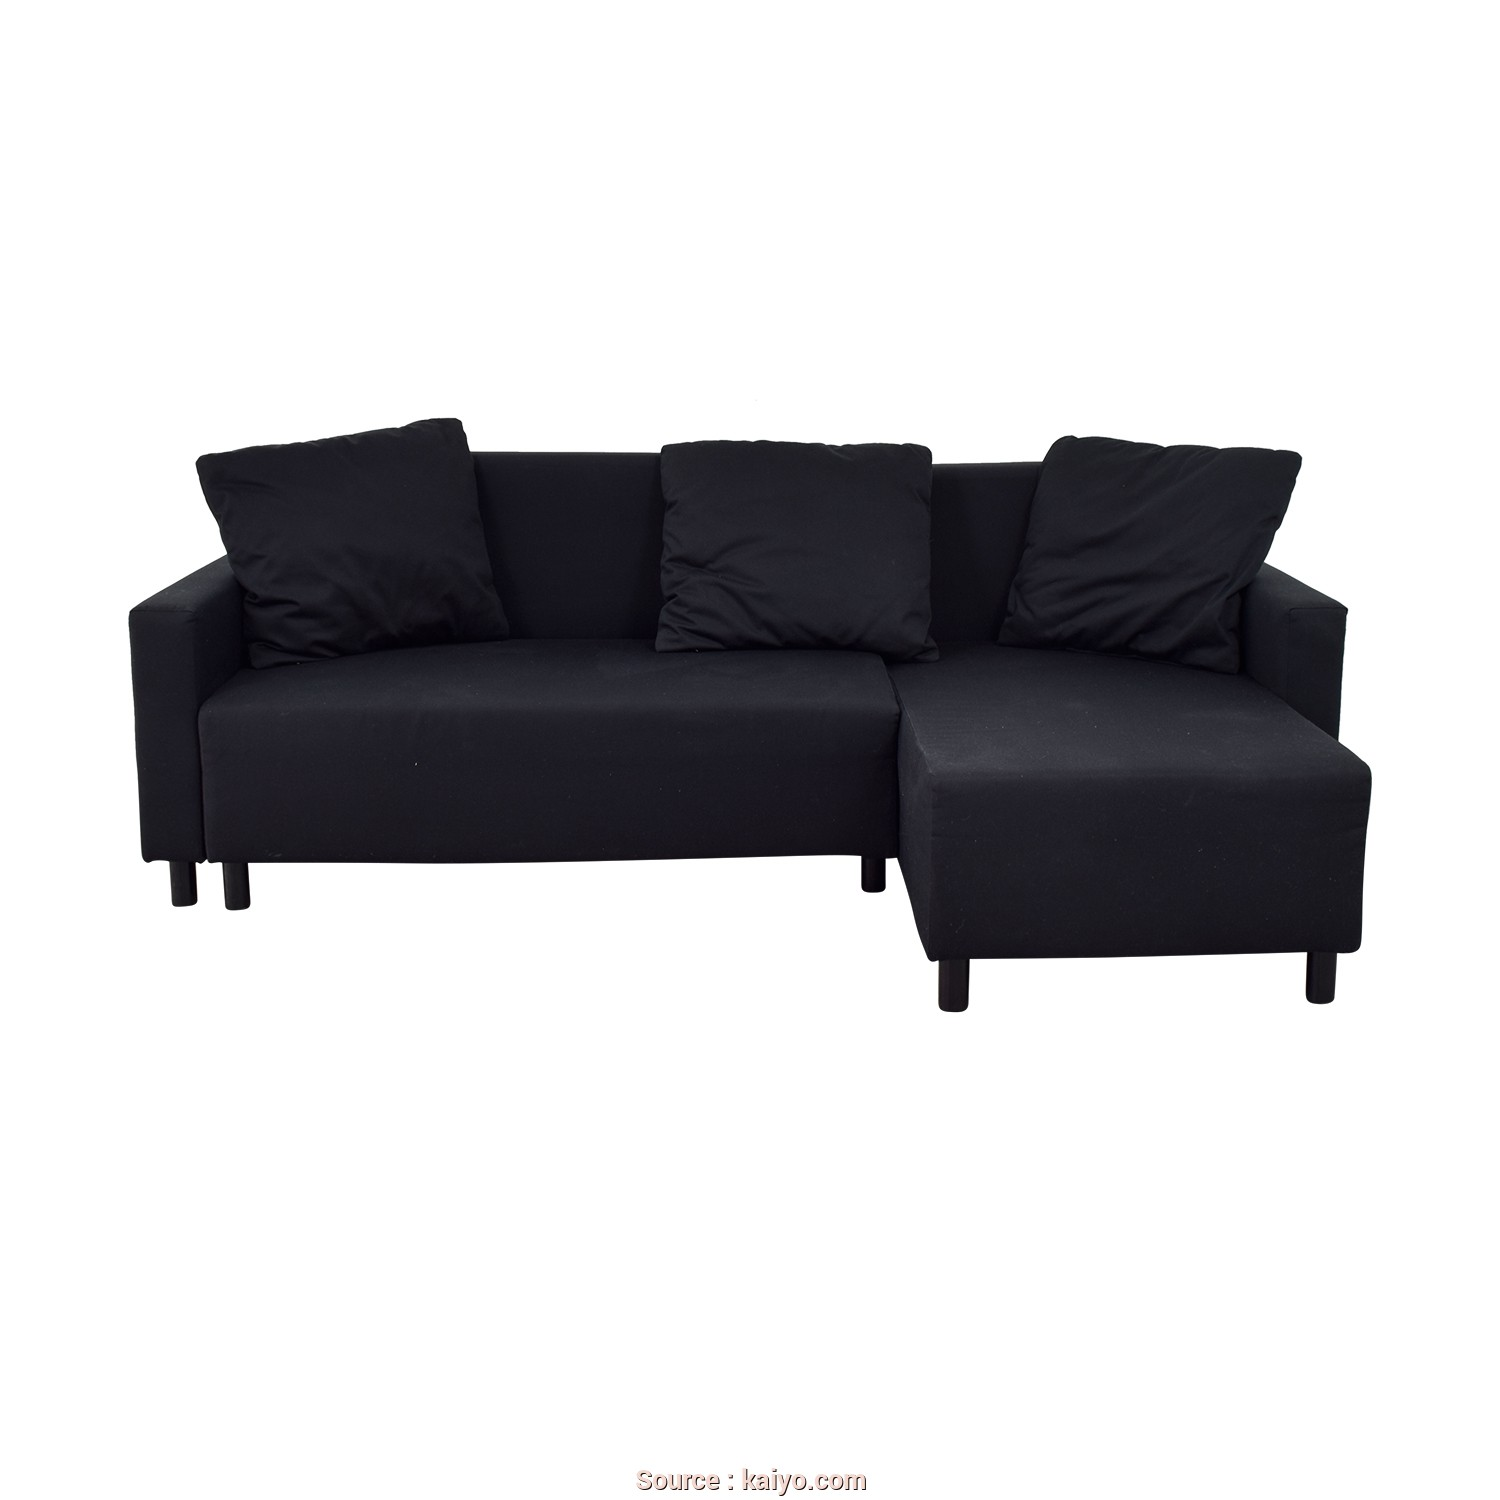 Ikea Futon Couch, Buono IKEA IKEA Black Sleeper Chaise Sectional With Storage Used